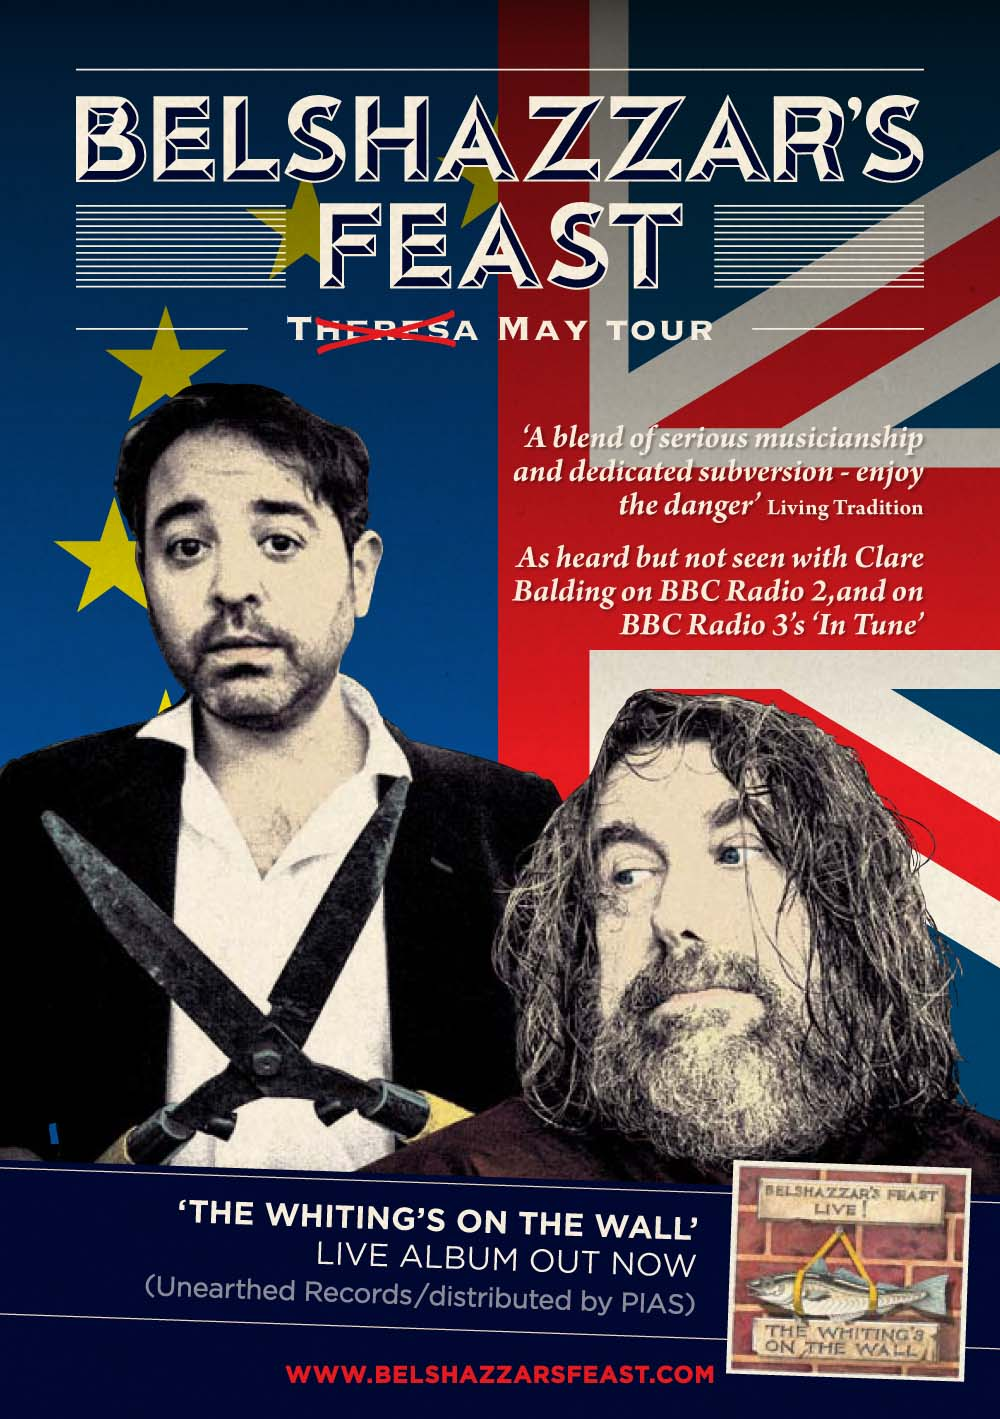 Belshazzar's Feast return to Wales on May 24, 2019 at Neuaddydderwen, Rhosygilwen, Pembrokeshire